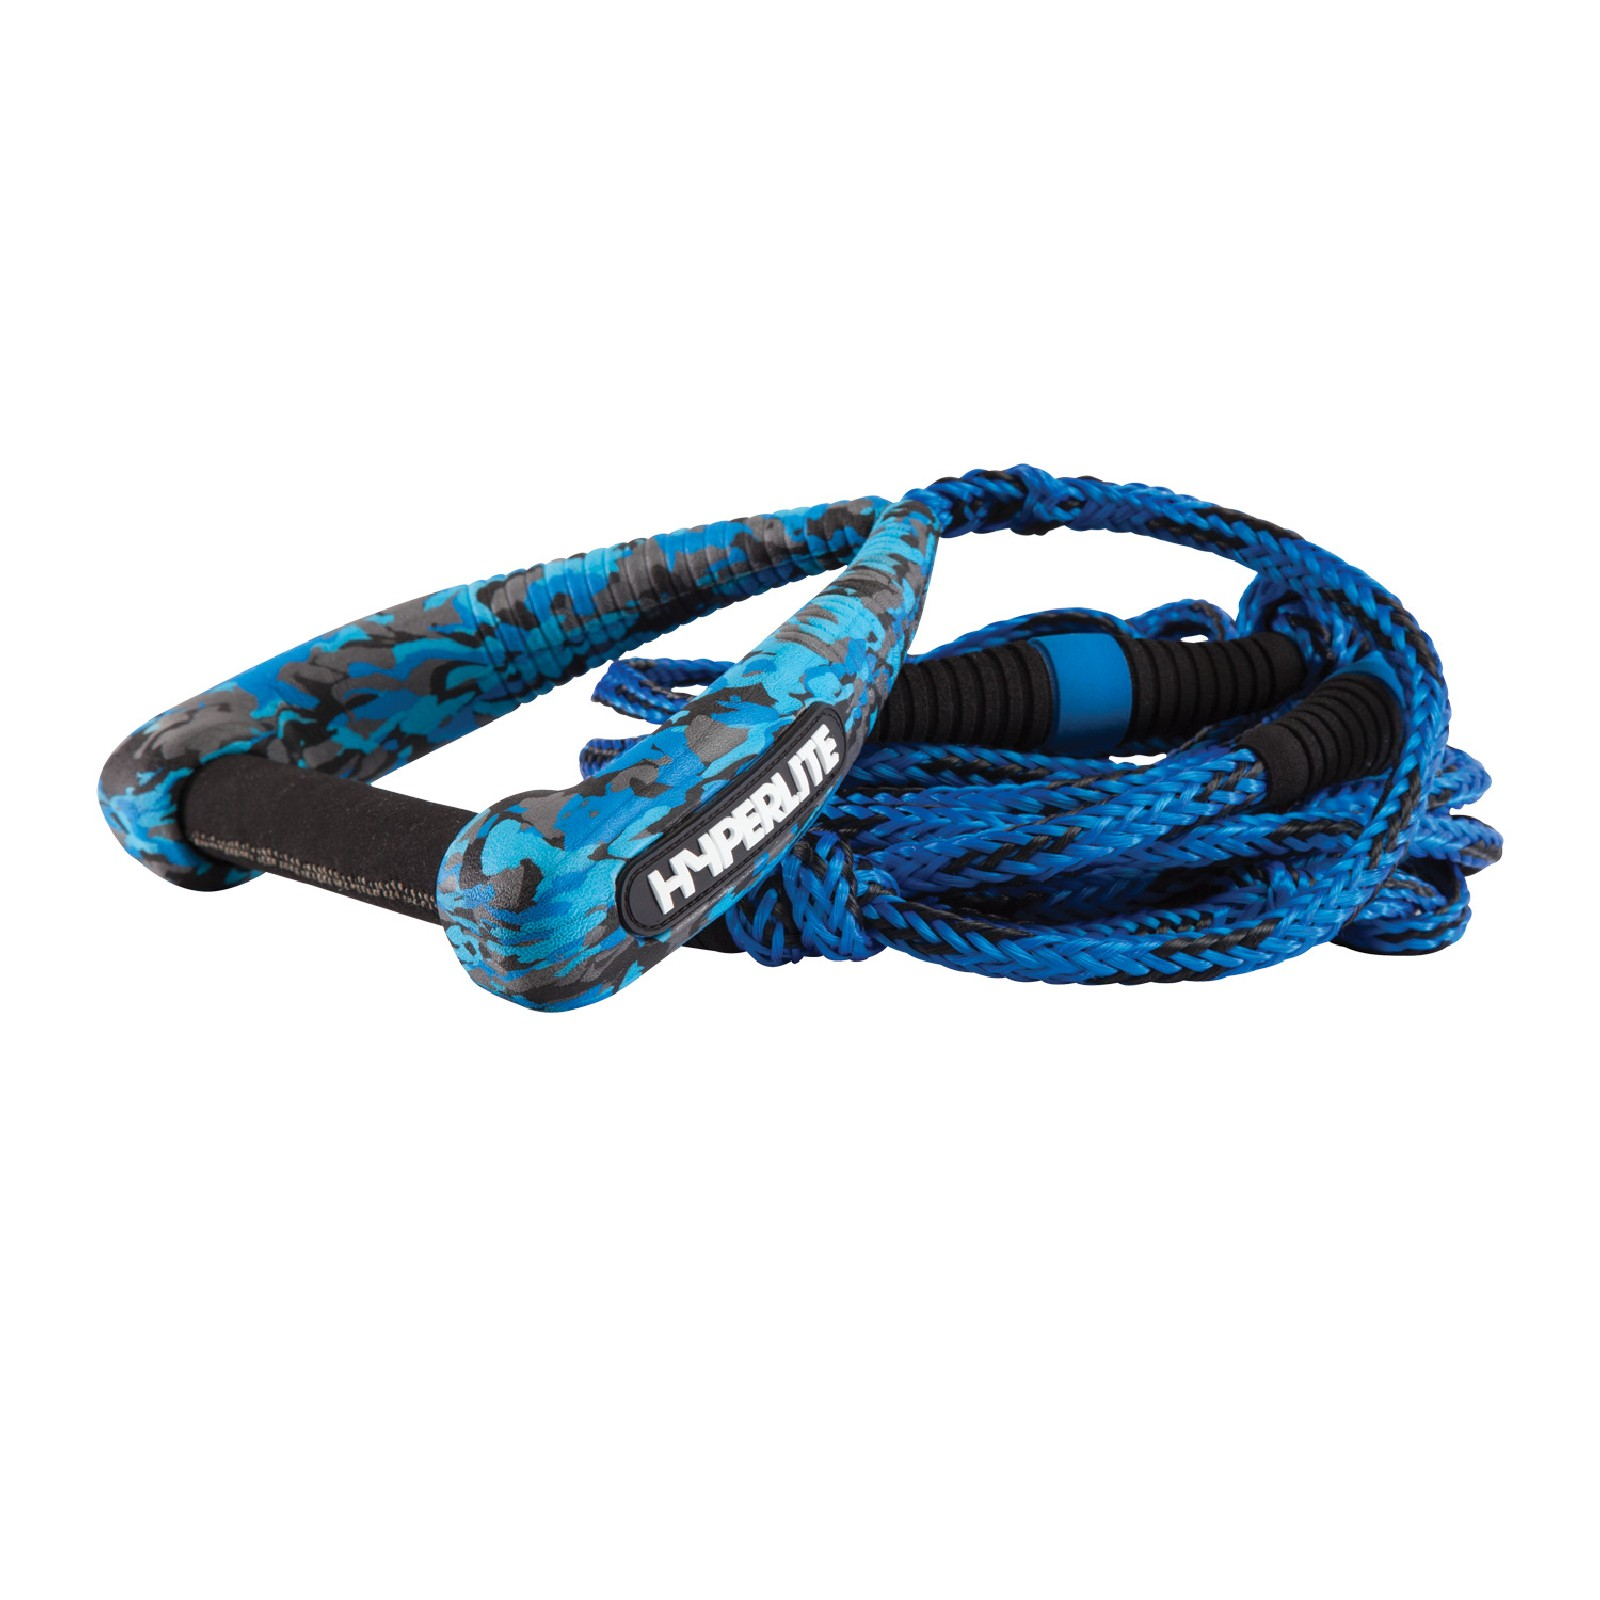 25' RIOT SURF ROPE W/HANDLE PACKAGE - BLUE HYPERLITE 2019